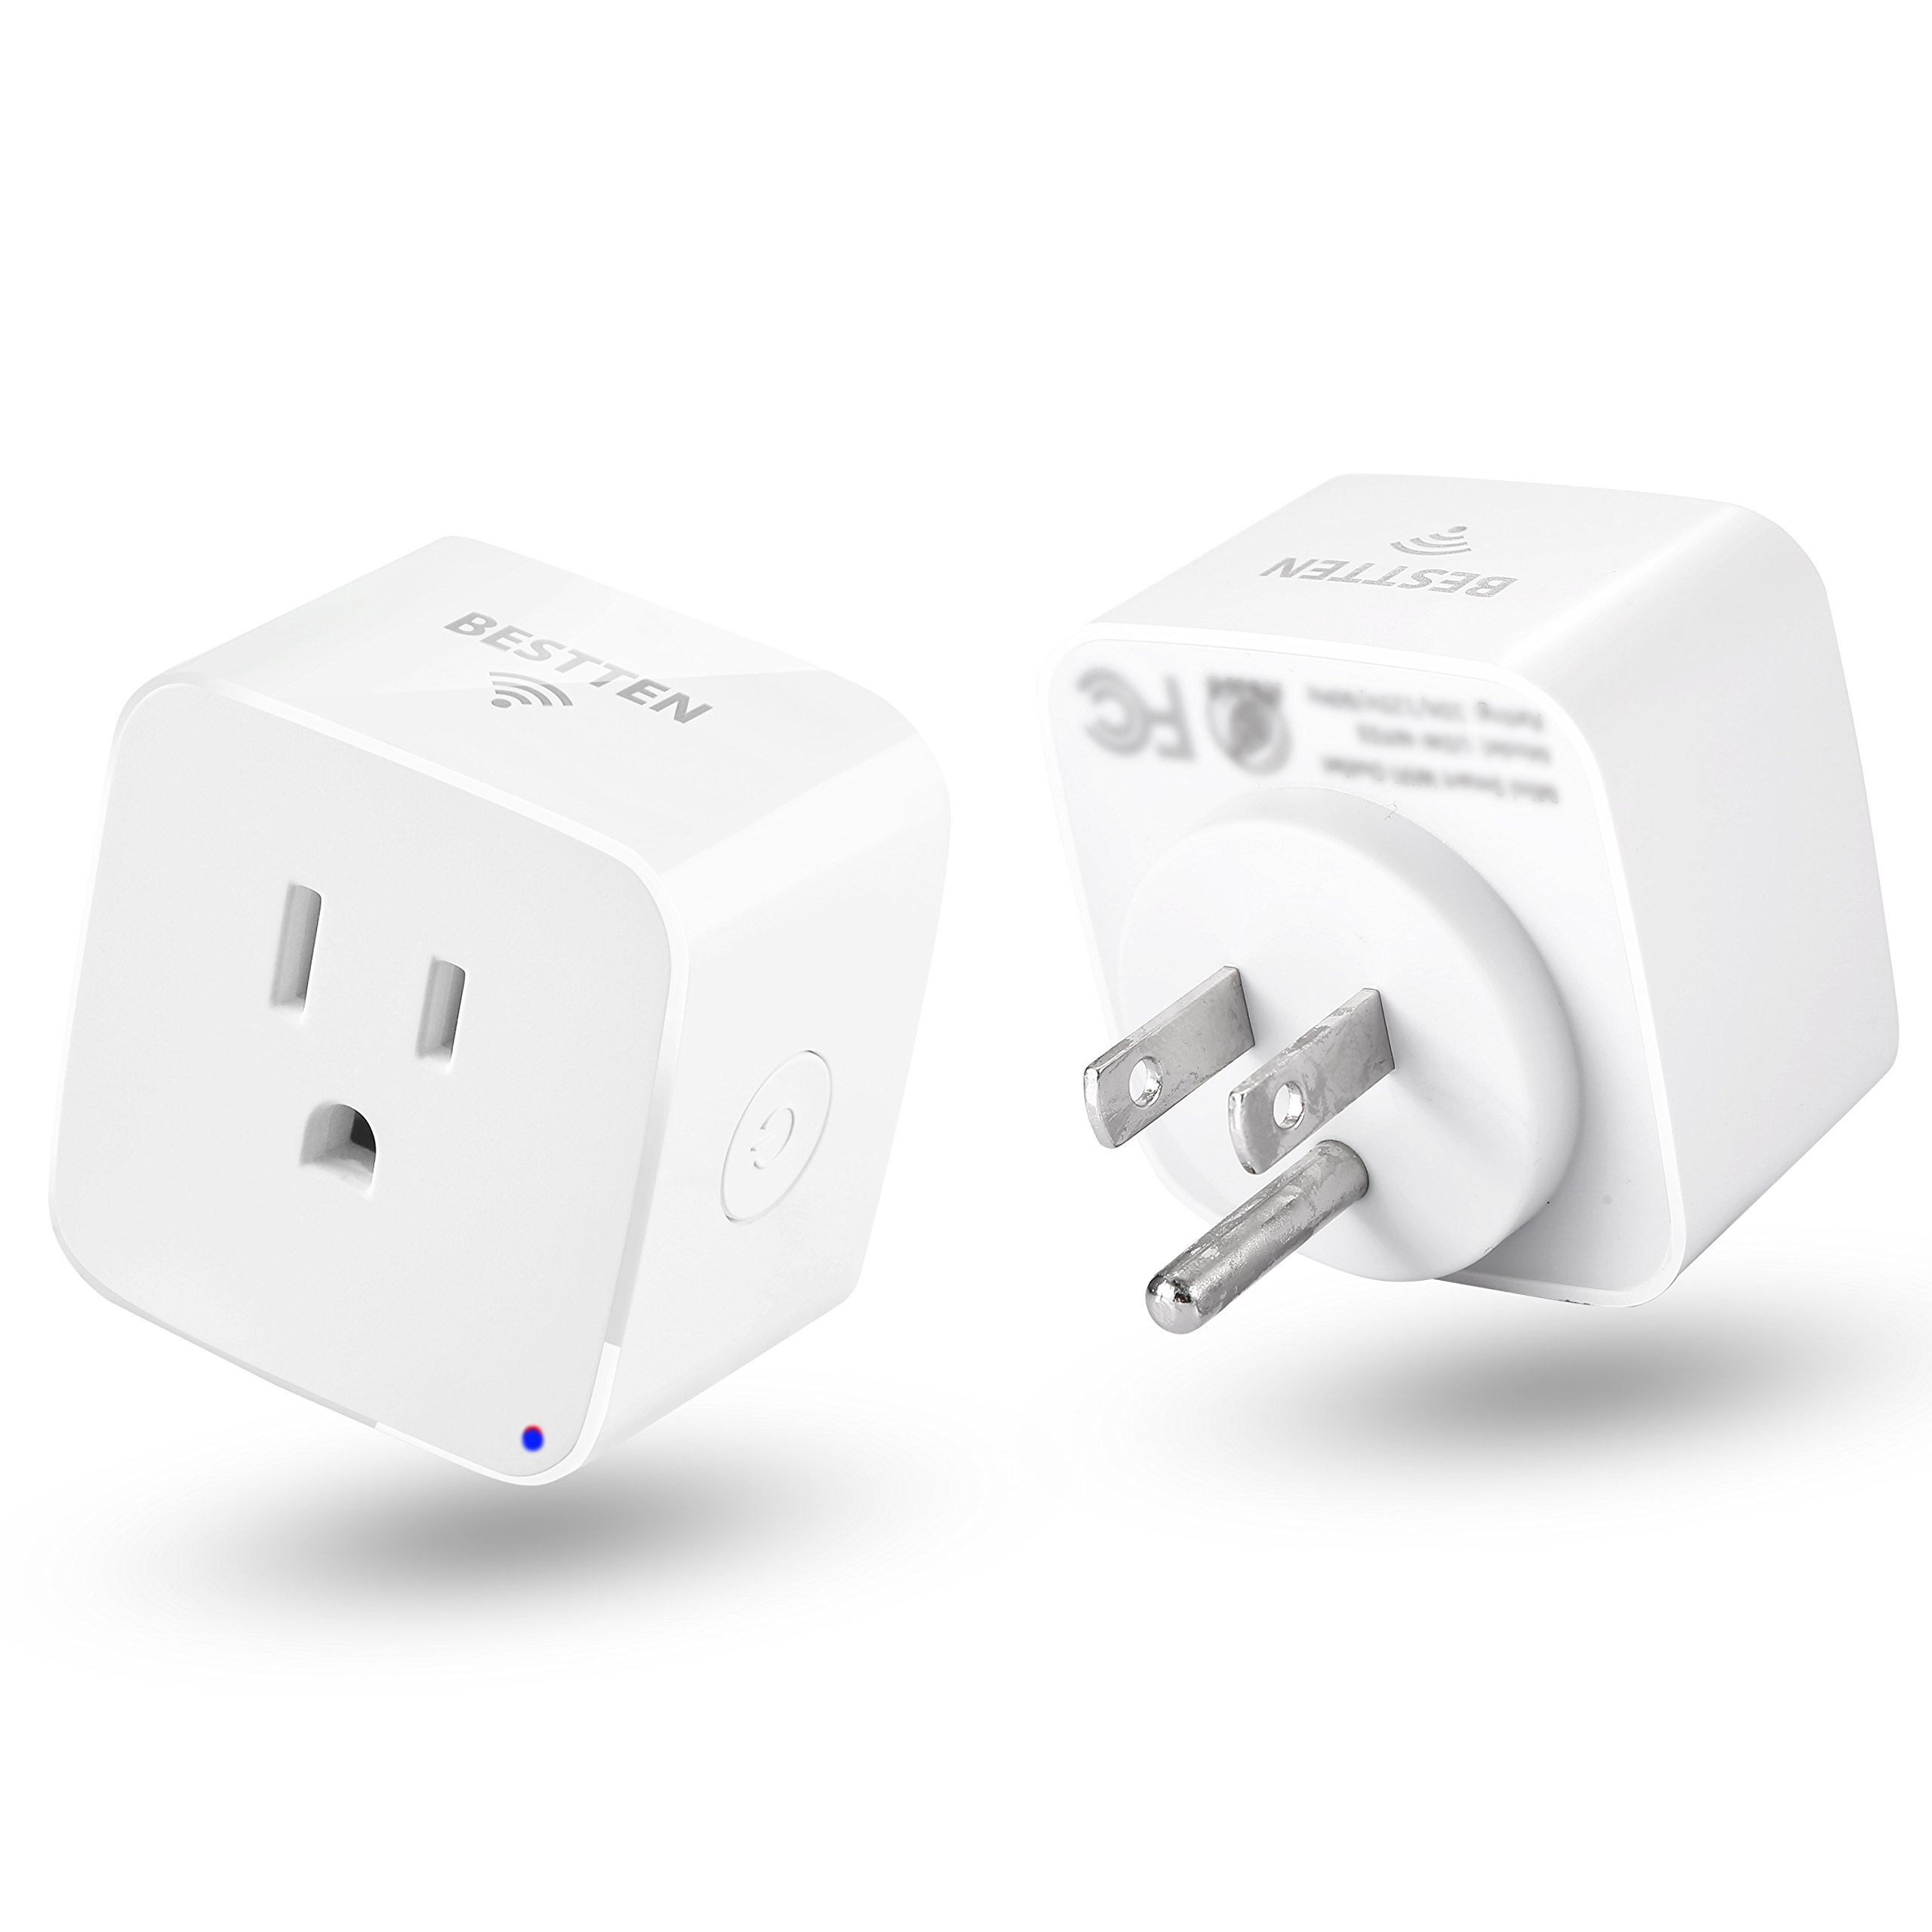 [2 Pack] BESTTEN Smart Plug, Mini Wi-Fi Outlet, Works with Amazon Alexa Echo and Google Home, Easy & Quick Set Up, White, No Hub Required, 10A/1250W, FCC Certified, White